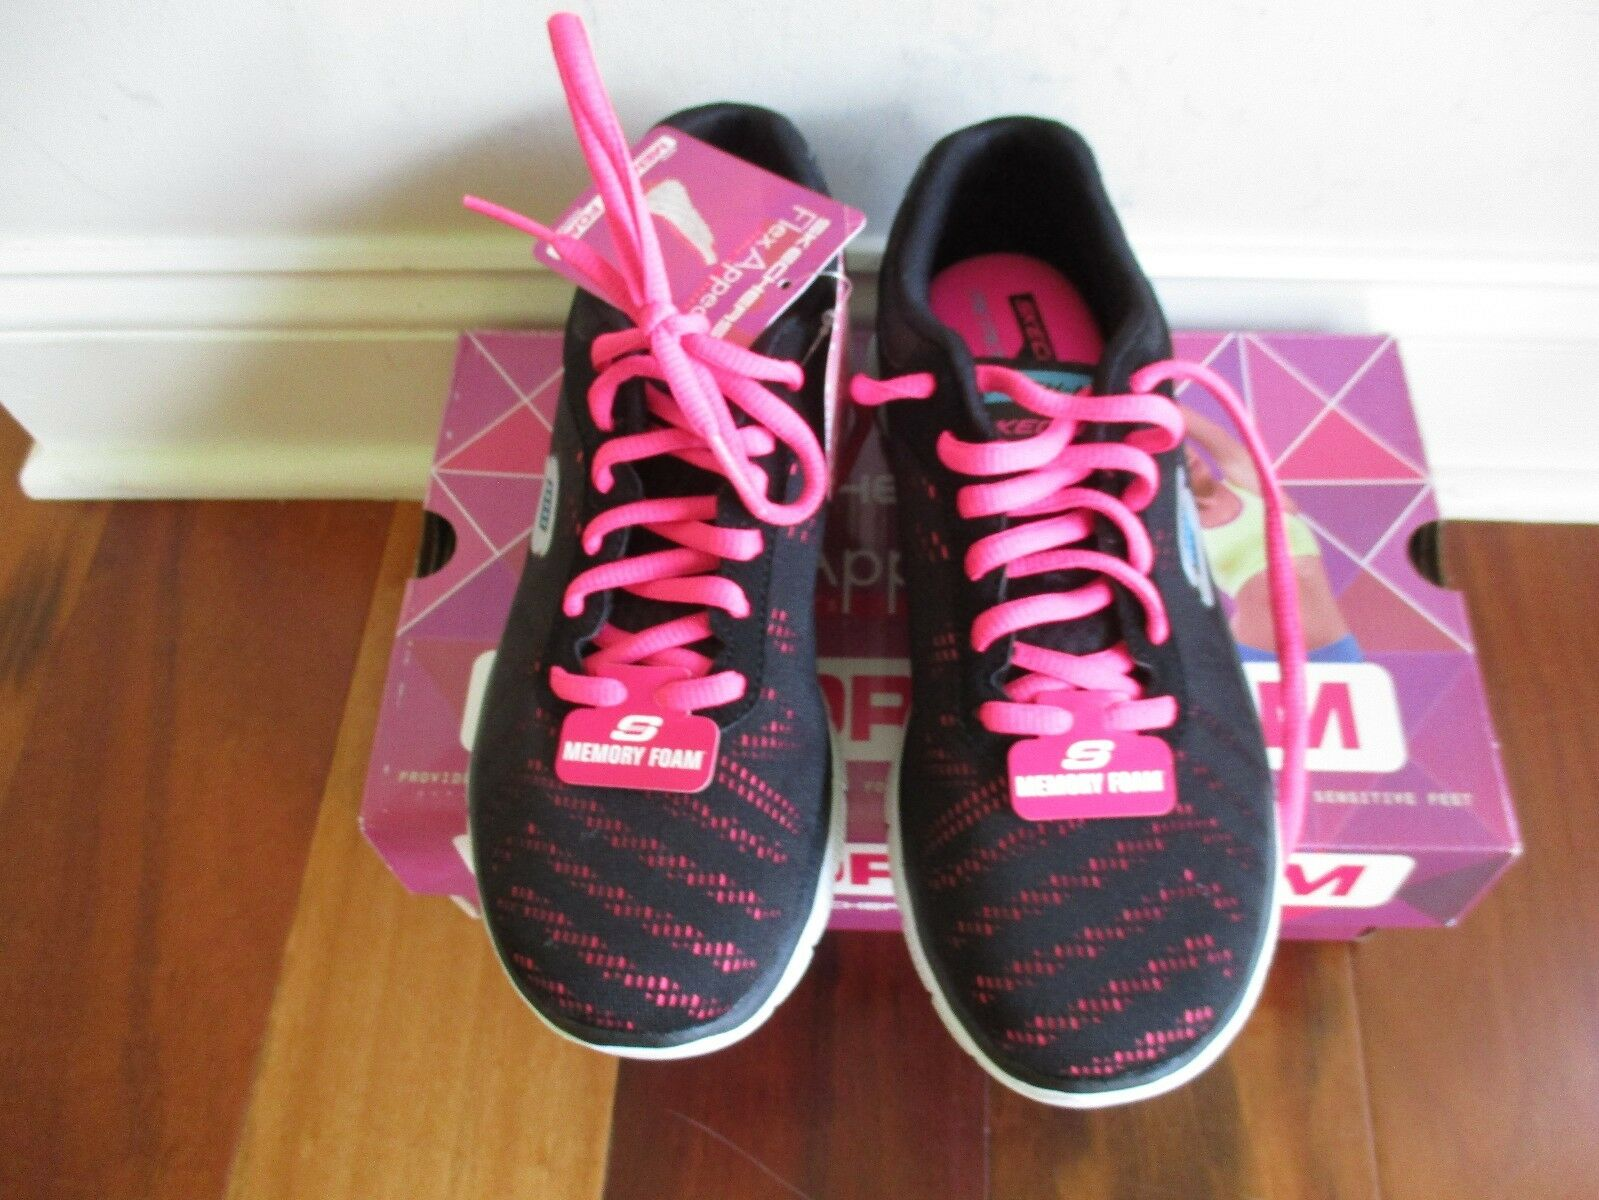 BNIB Skechers First First Skechers Glance Donna shoes, size 6.5M, Blk/Hot pink,  69.99 ac491f